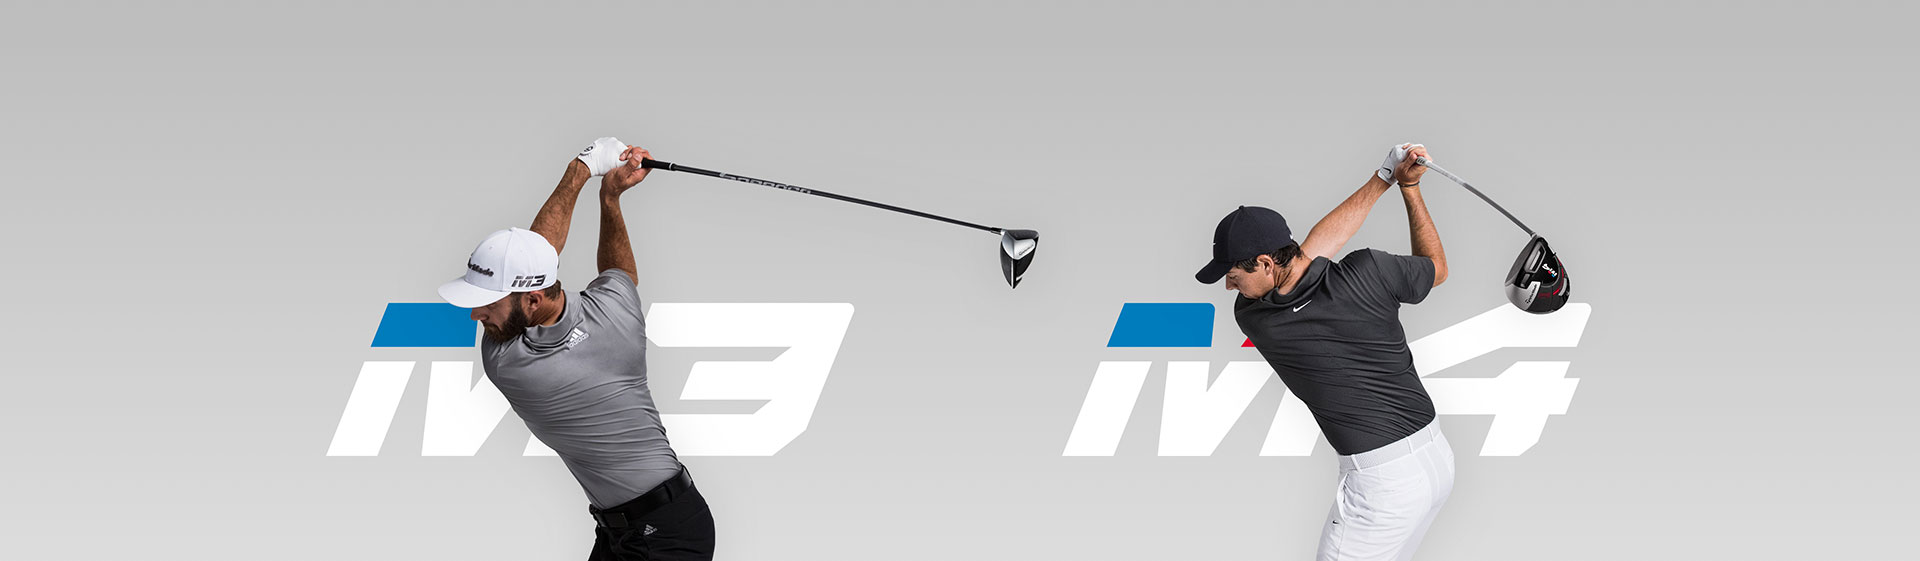 https://www.taylormadegolf.com/on/demandware.static/-/Sites-TMaG-Library/default/v1515350375927/TaylorMade/plp/2017/m-family-page/build/images2018/m-family@2x.jpg